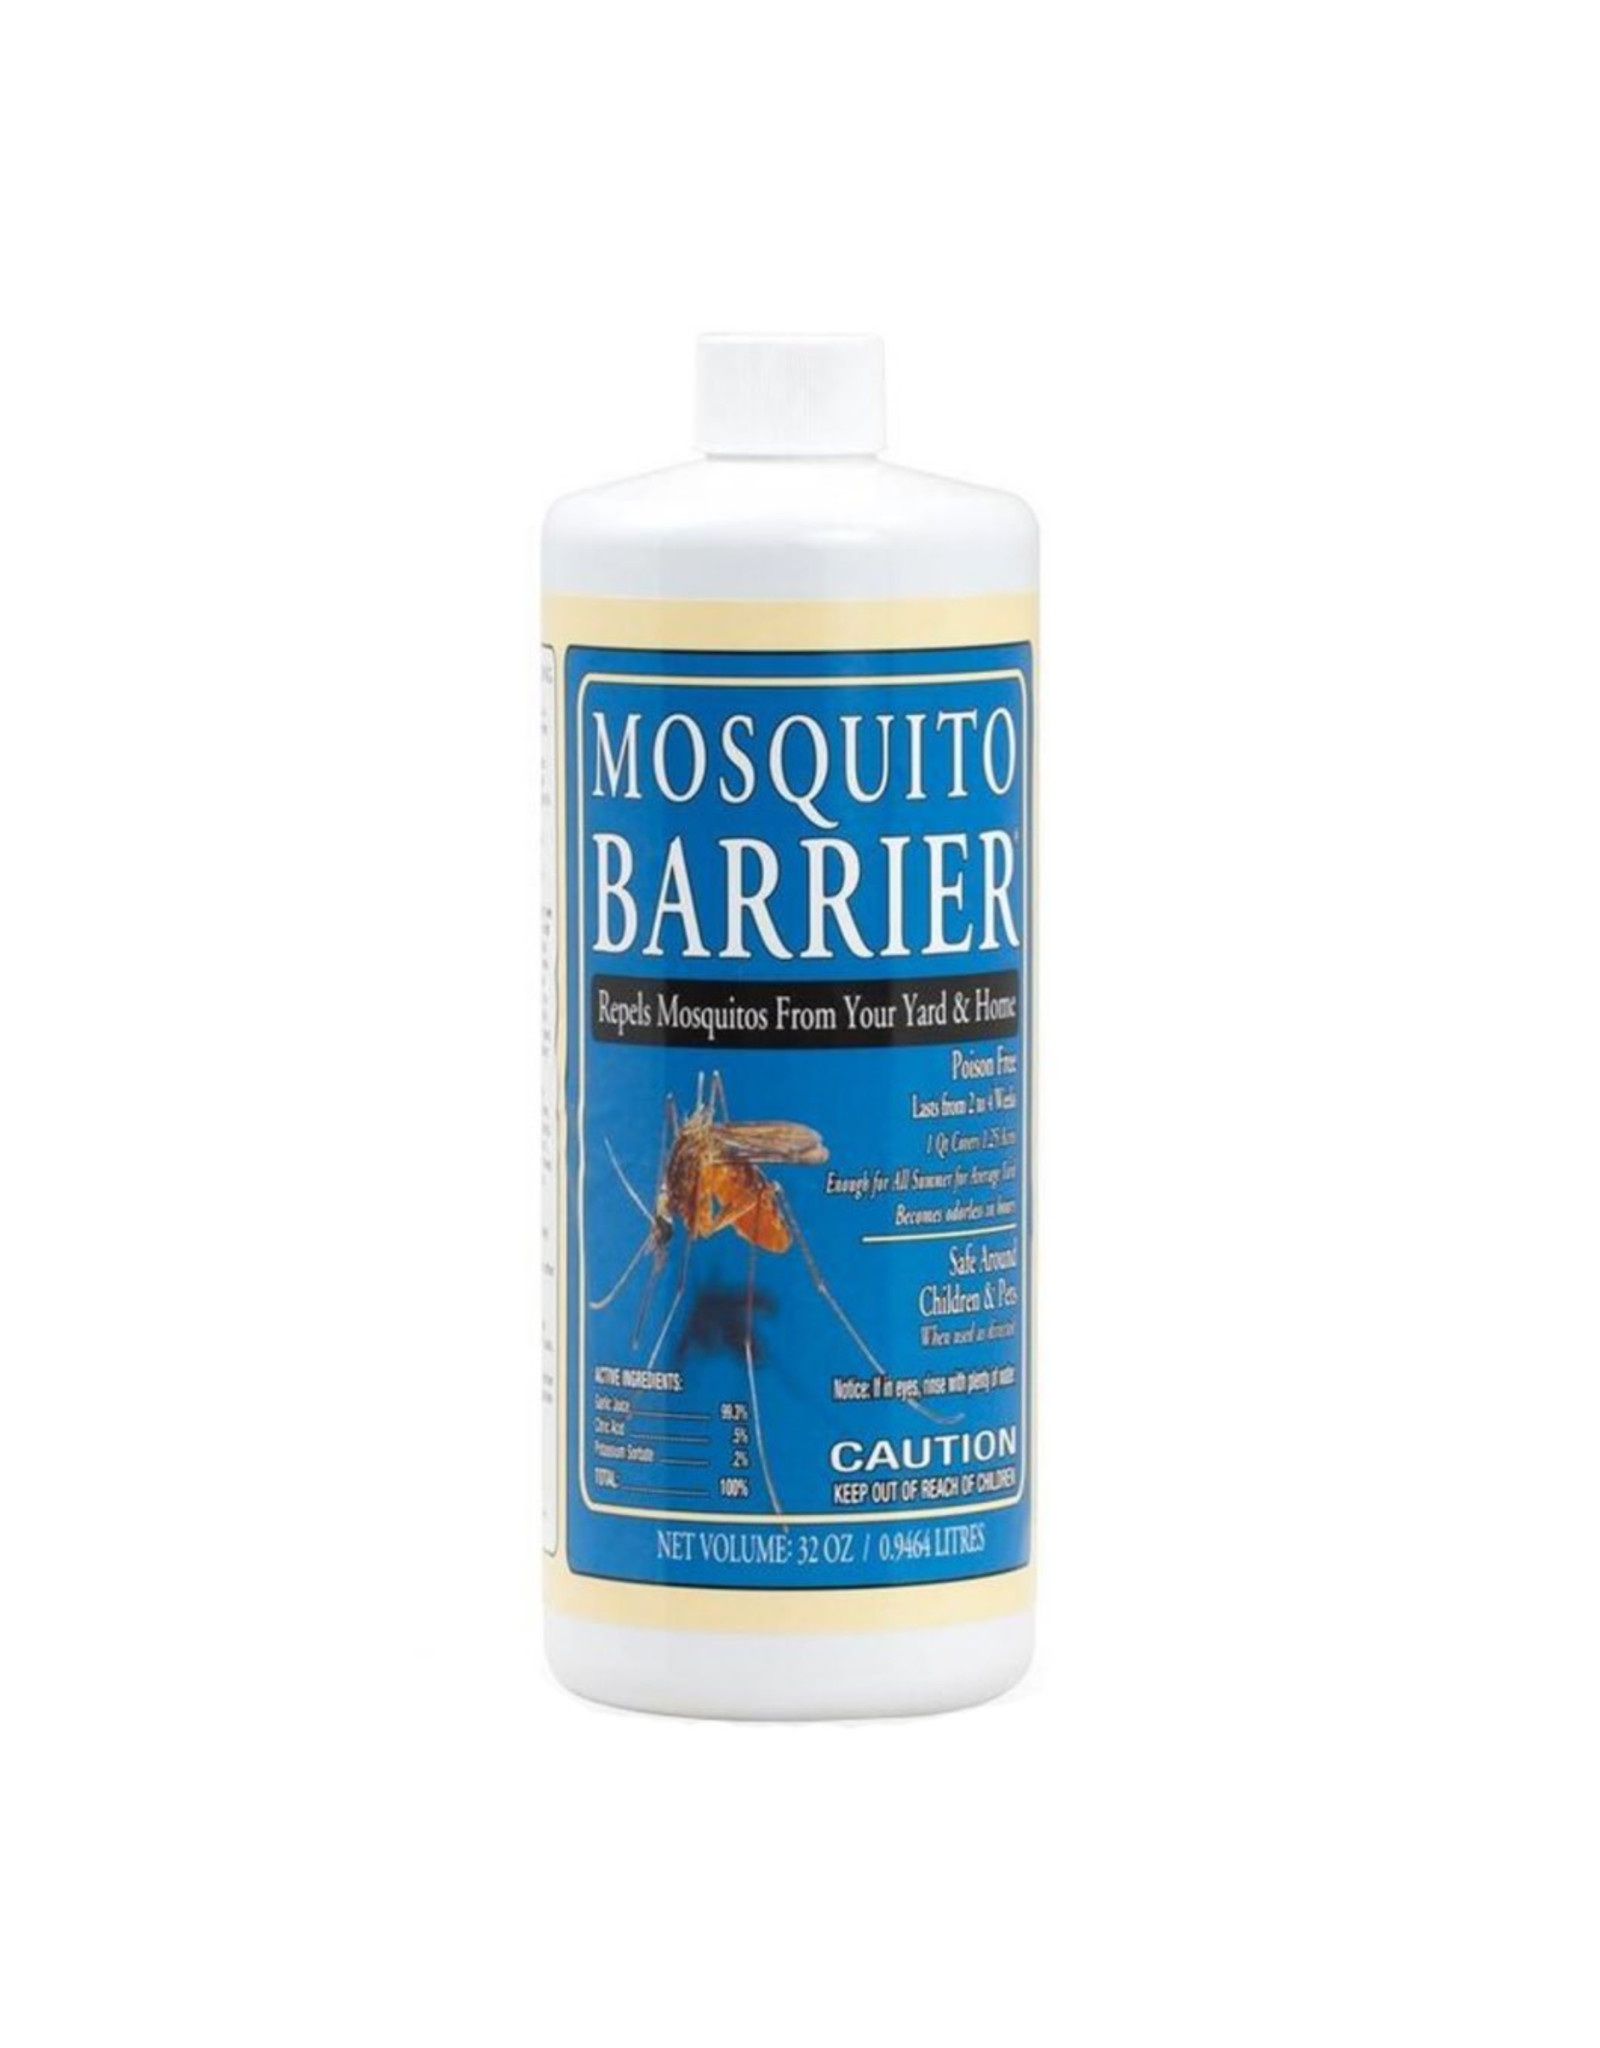 MOSQUITO BARRIER MOSQUITO BARRIER